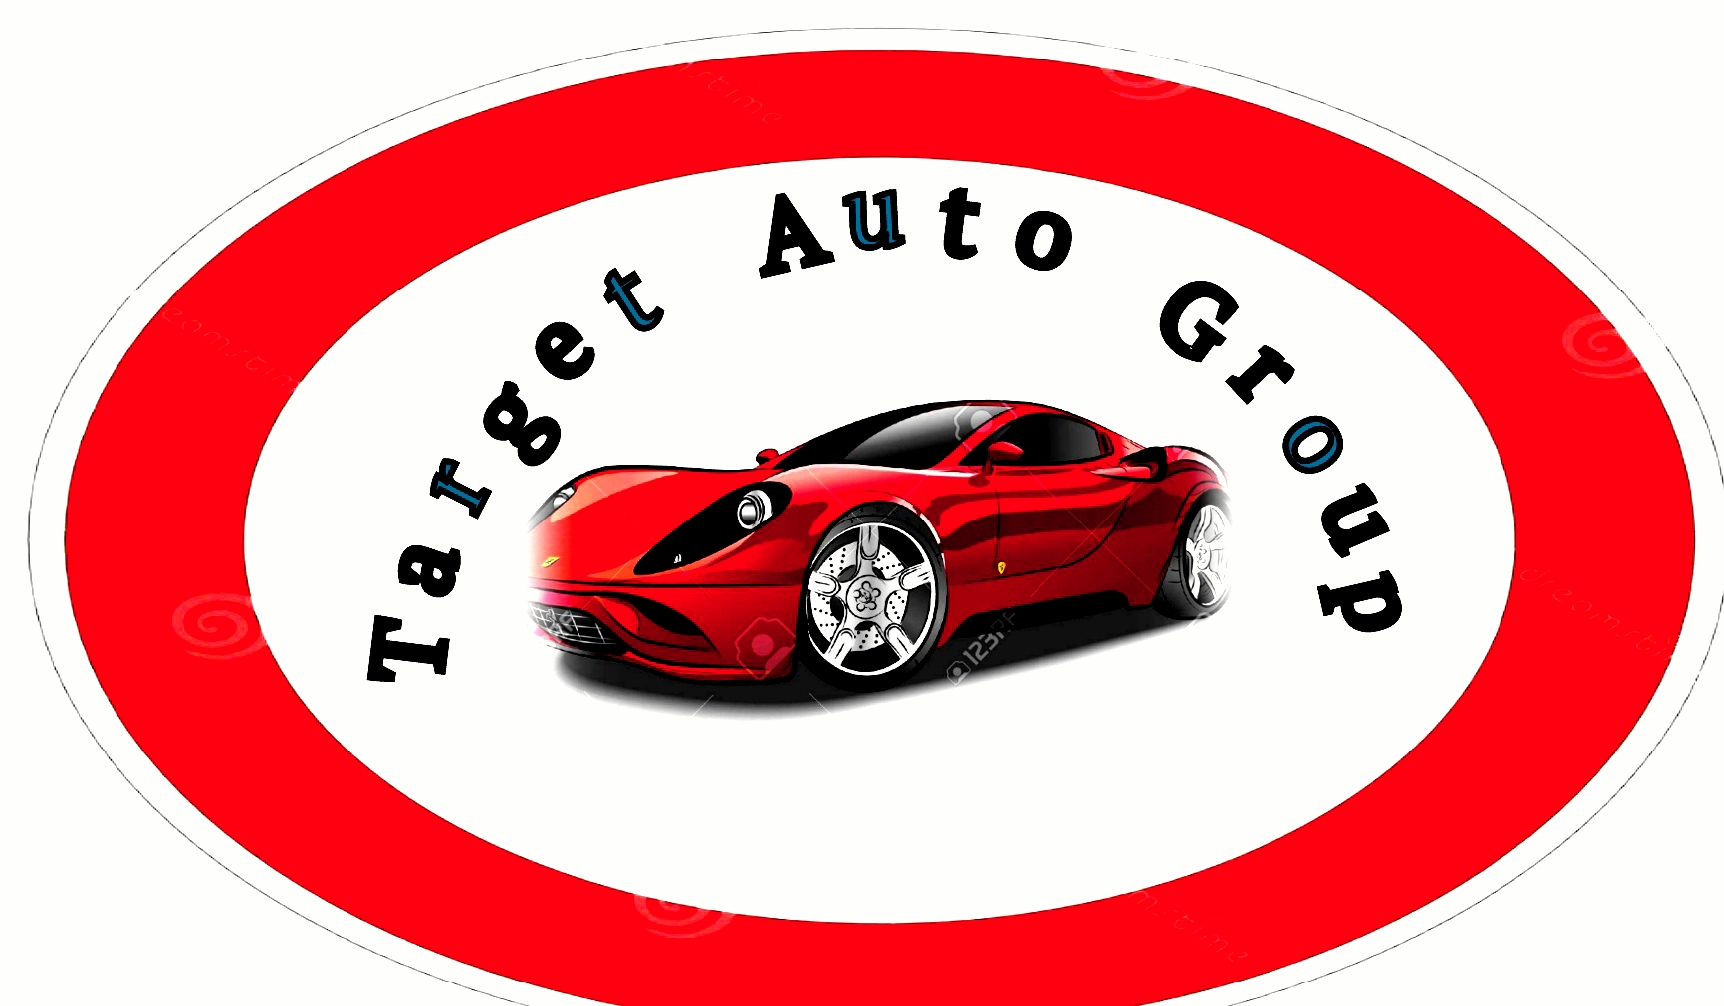 Target Auto Group